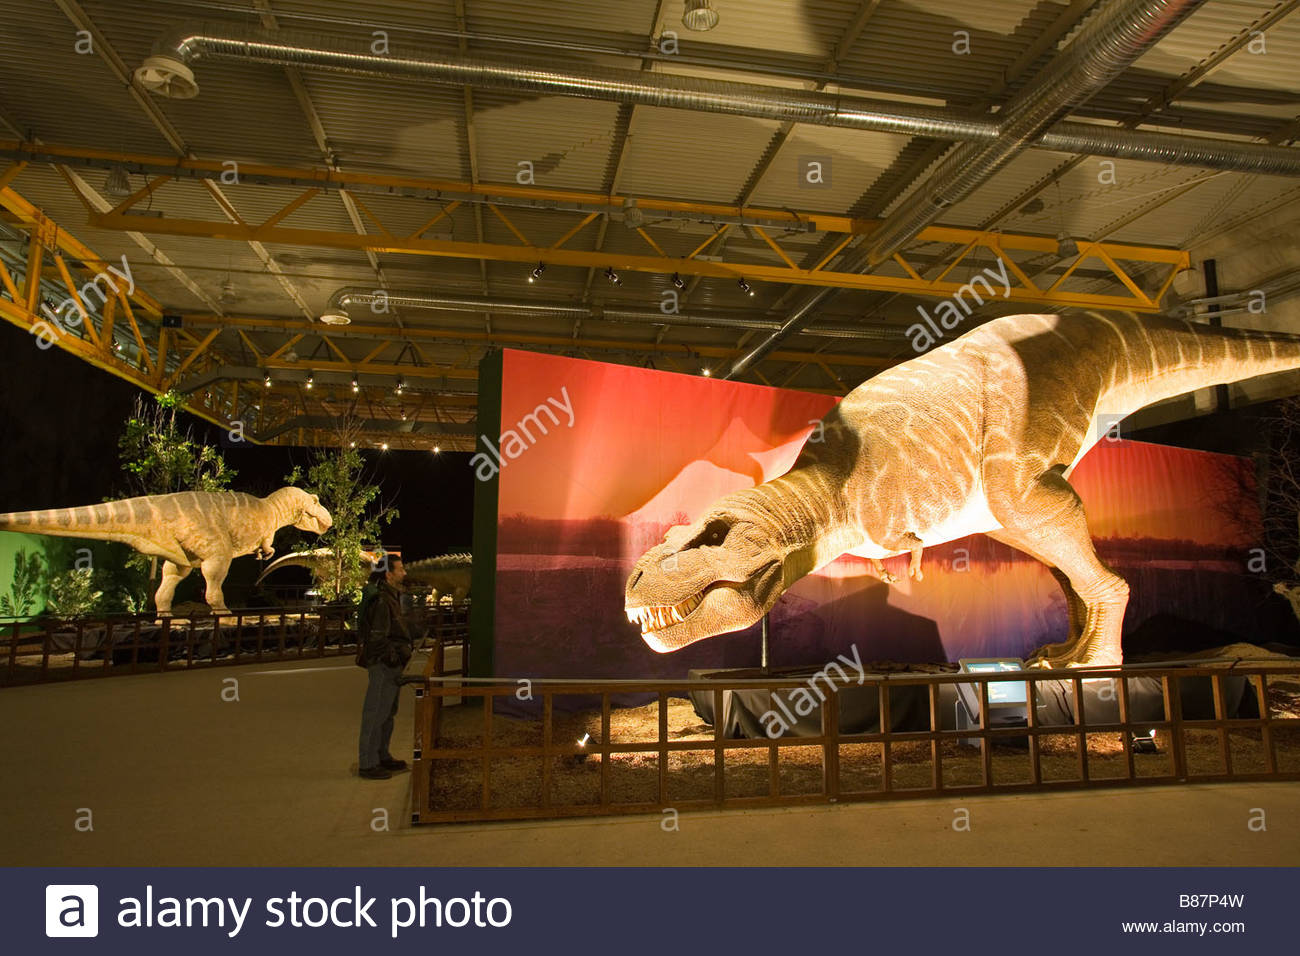 europe,italy,lombardia,cremona,exhibition of reproduction of dinosaurs,tyrannosaur - Stock Image